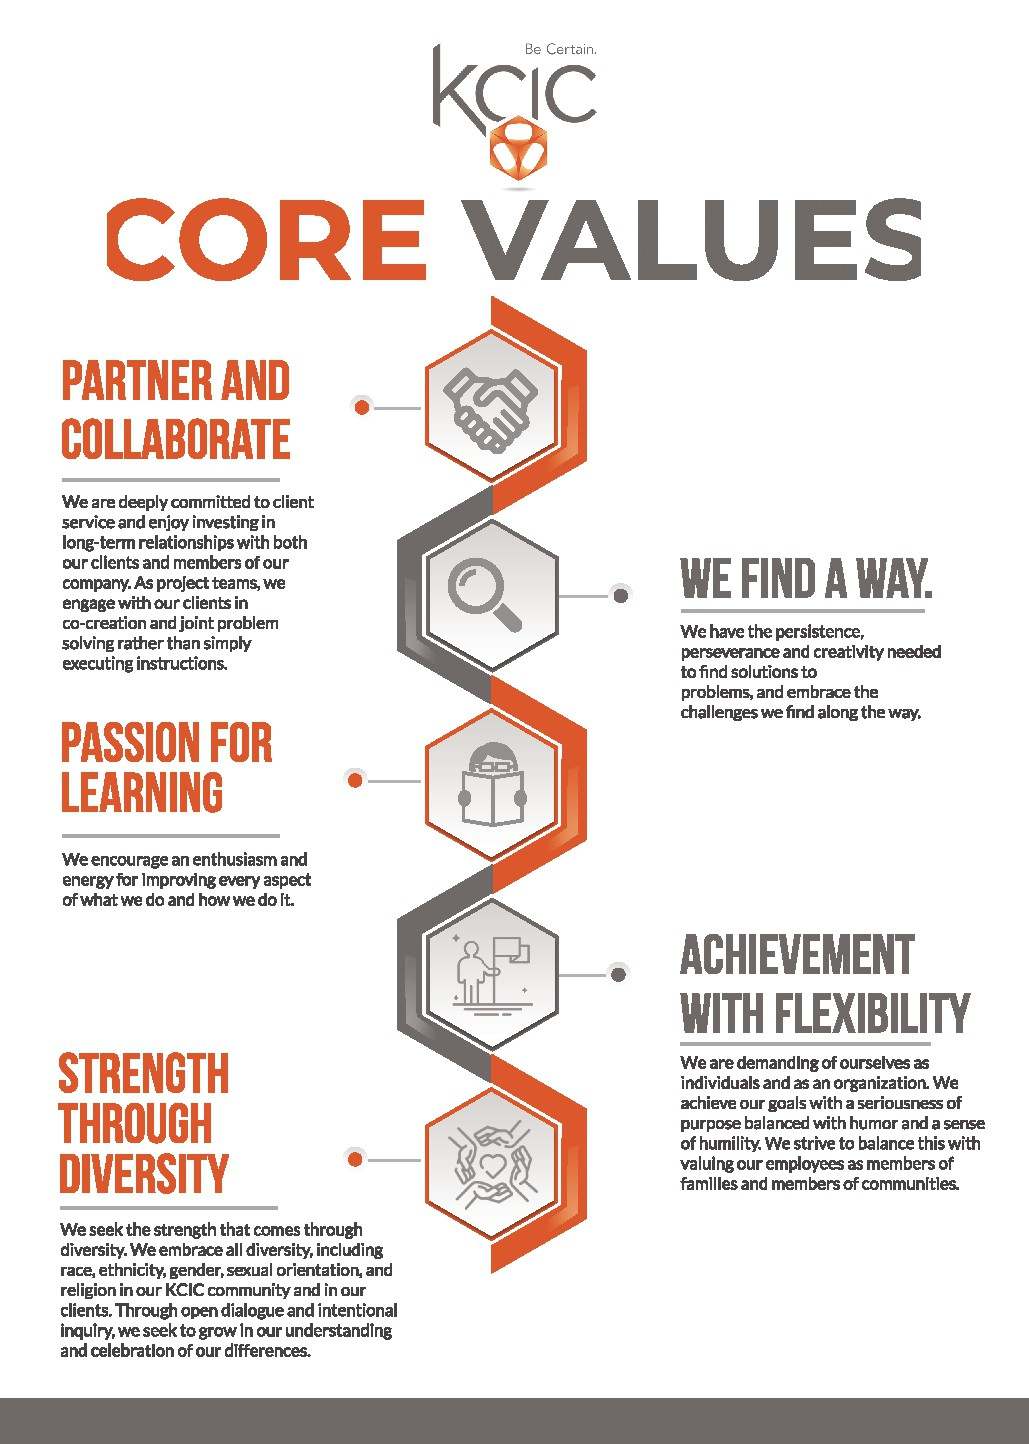 Update to Core Values project